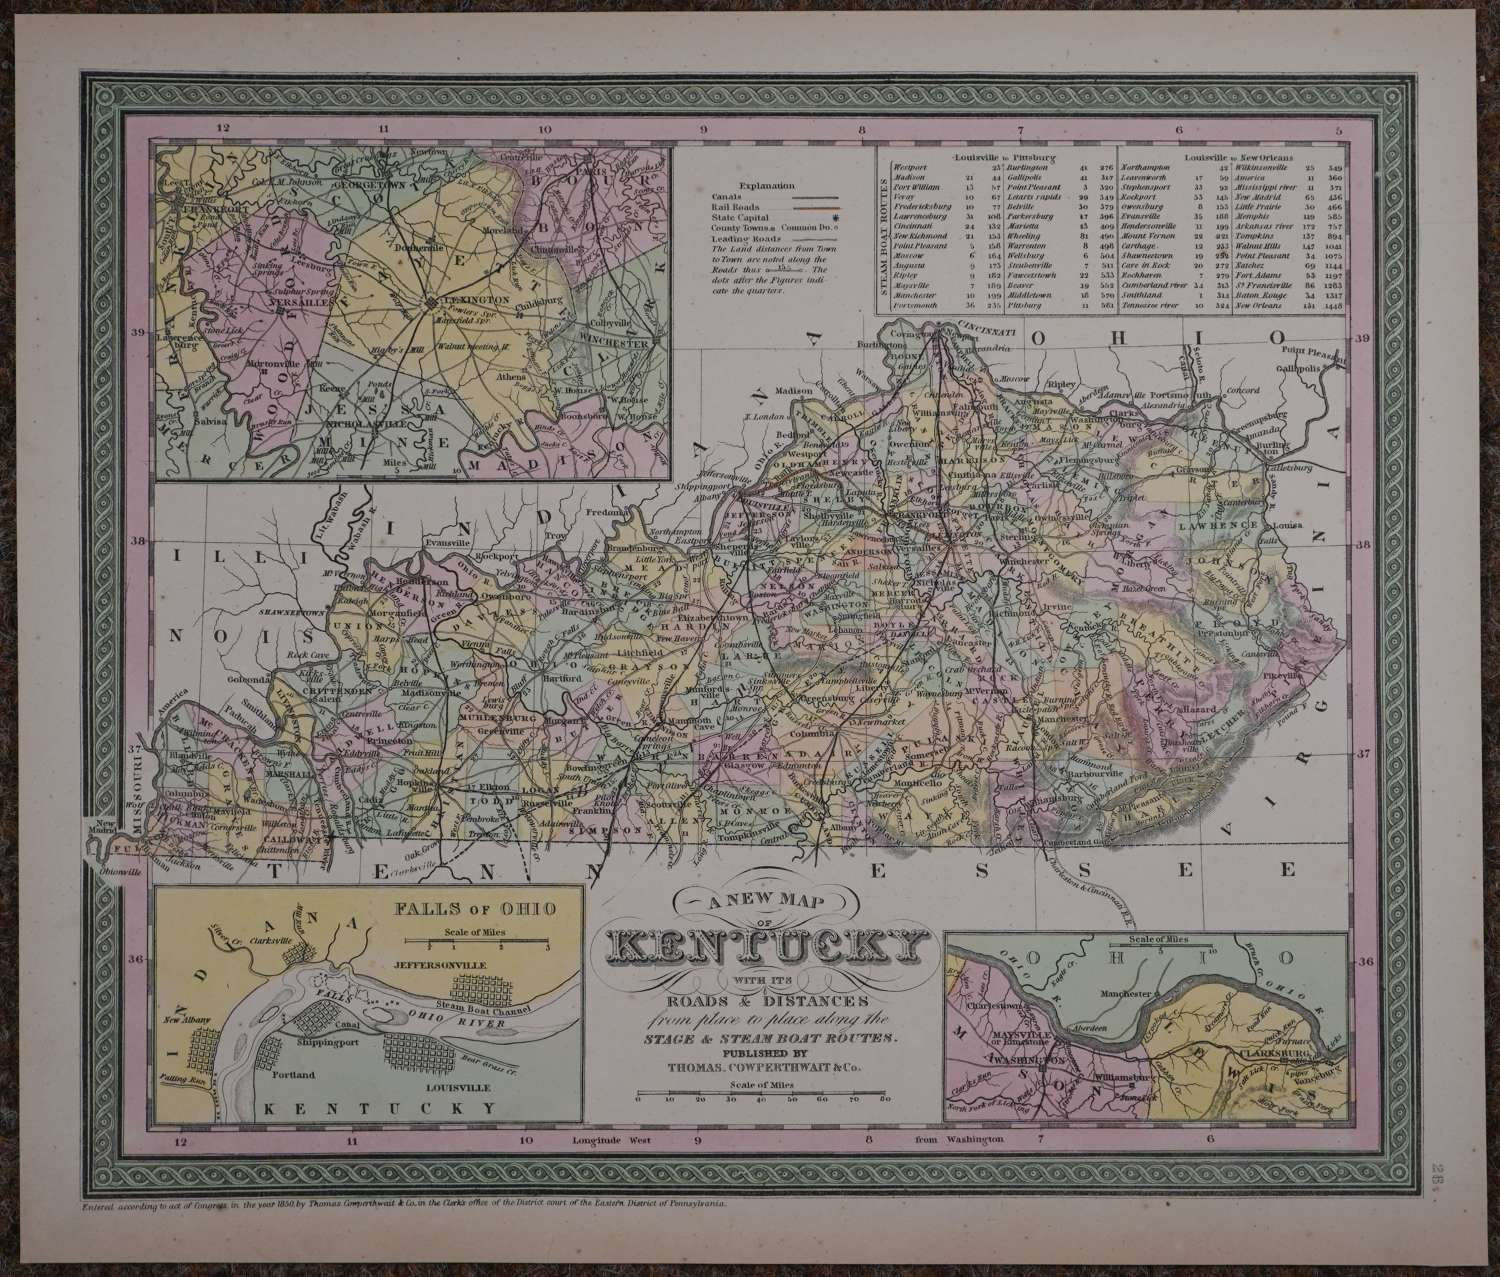 A New Map of Kentucky by Thomas Cowperthwait & Co